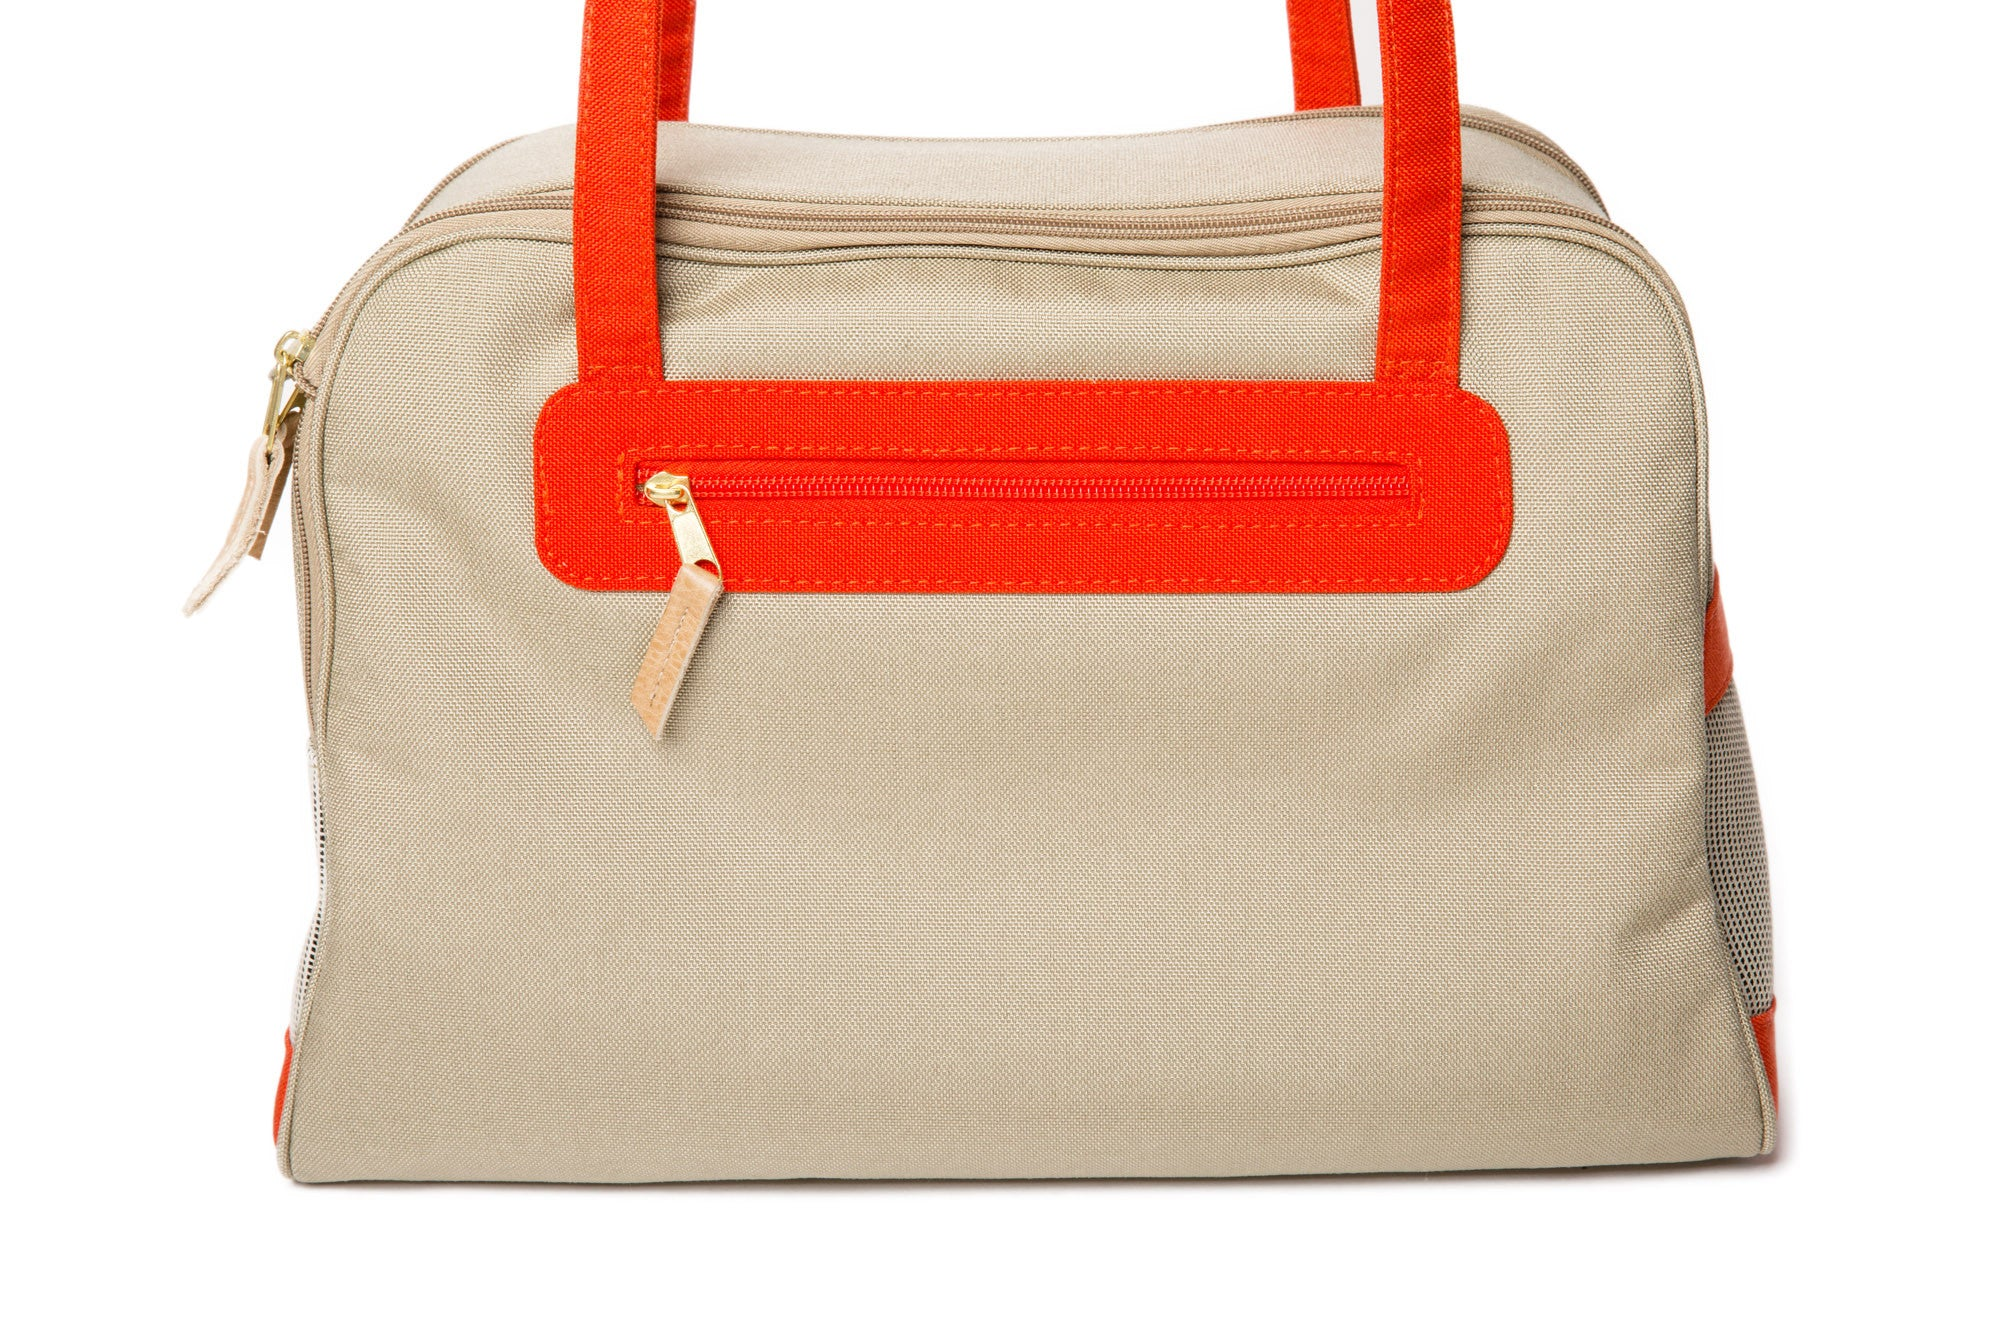 Colored Canvas Trim with Natural Canvas Carrier